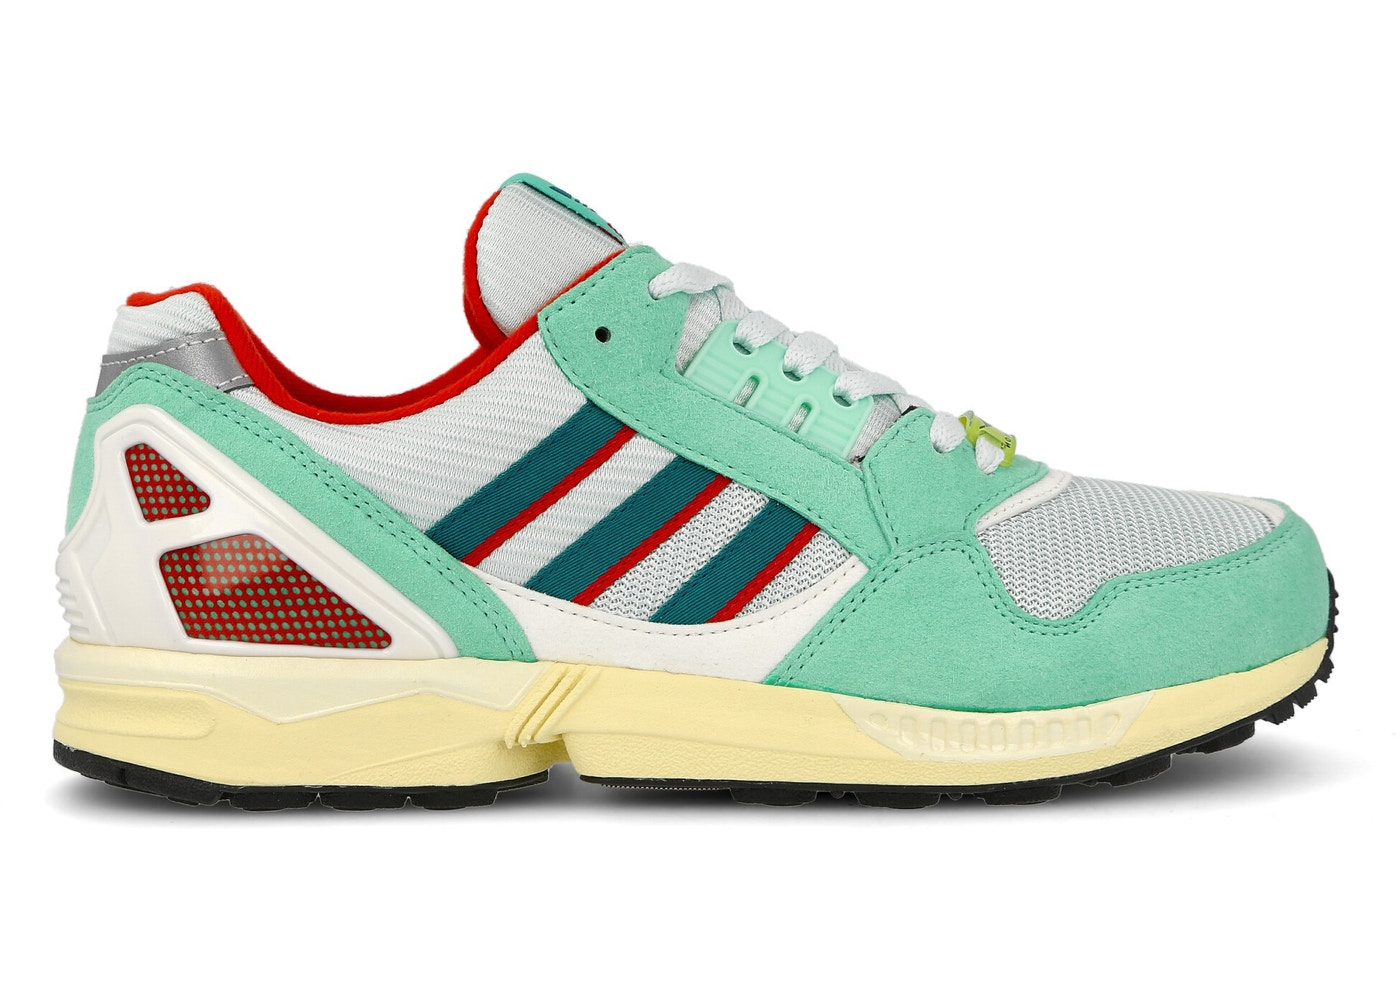 timeless design 1ad4f a0357 adidas Size 14 Shoes - Release Date